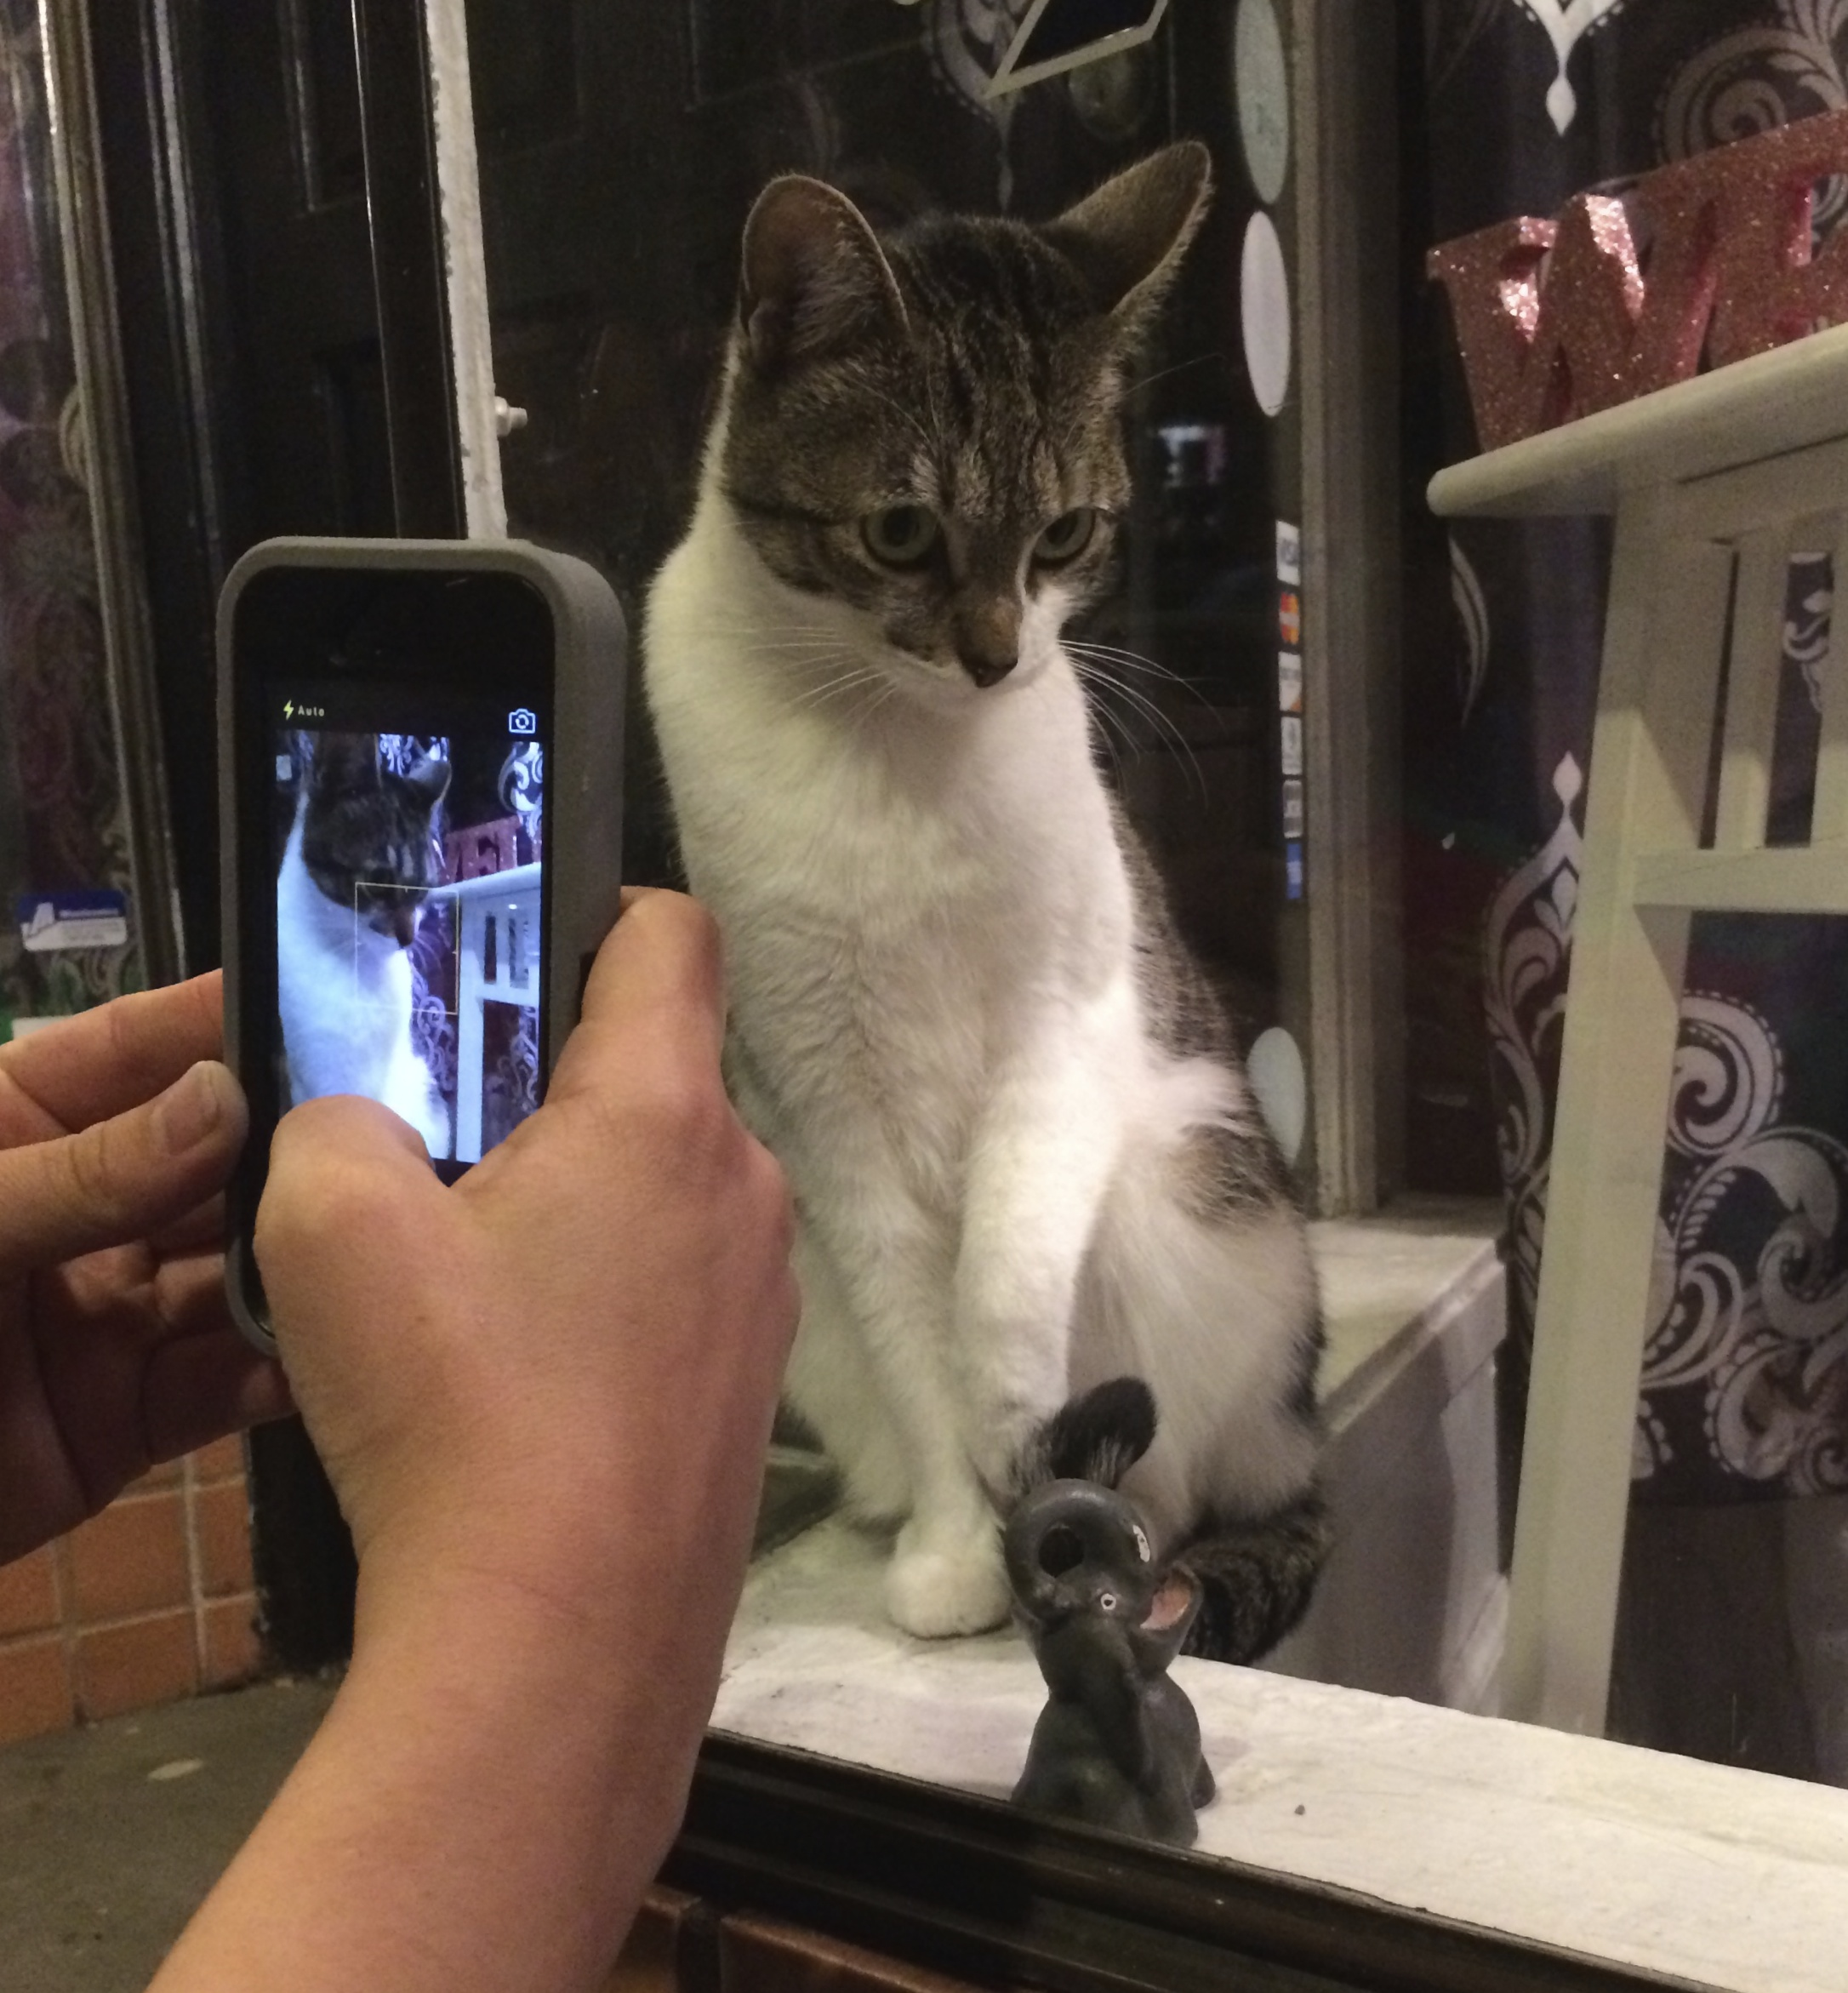 iPhone Taking Picture of Cat In Window